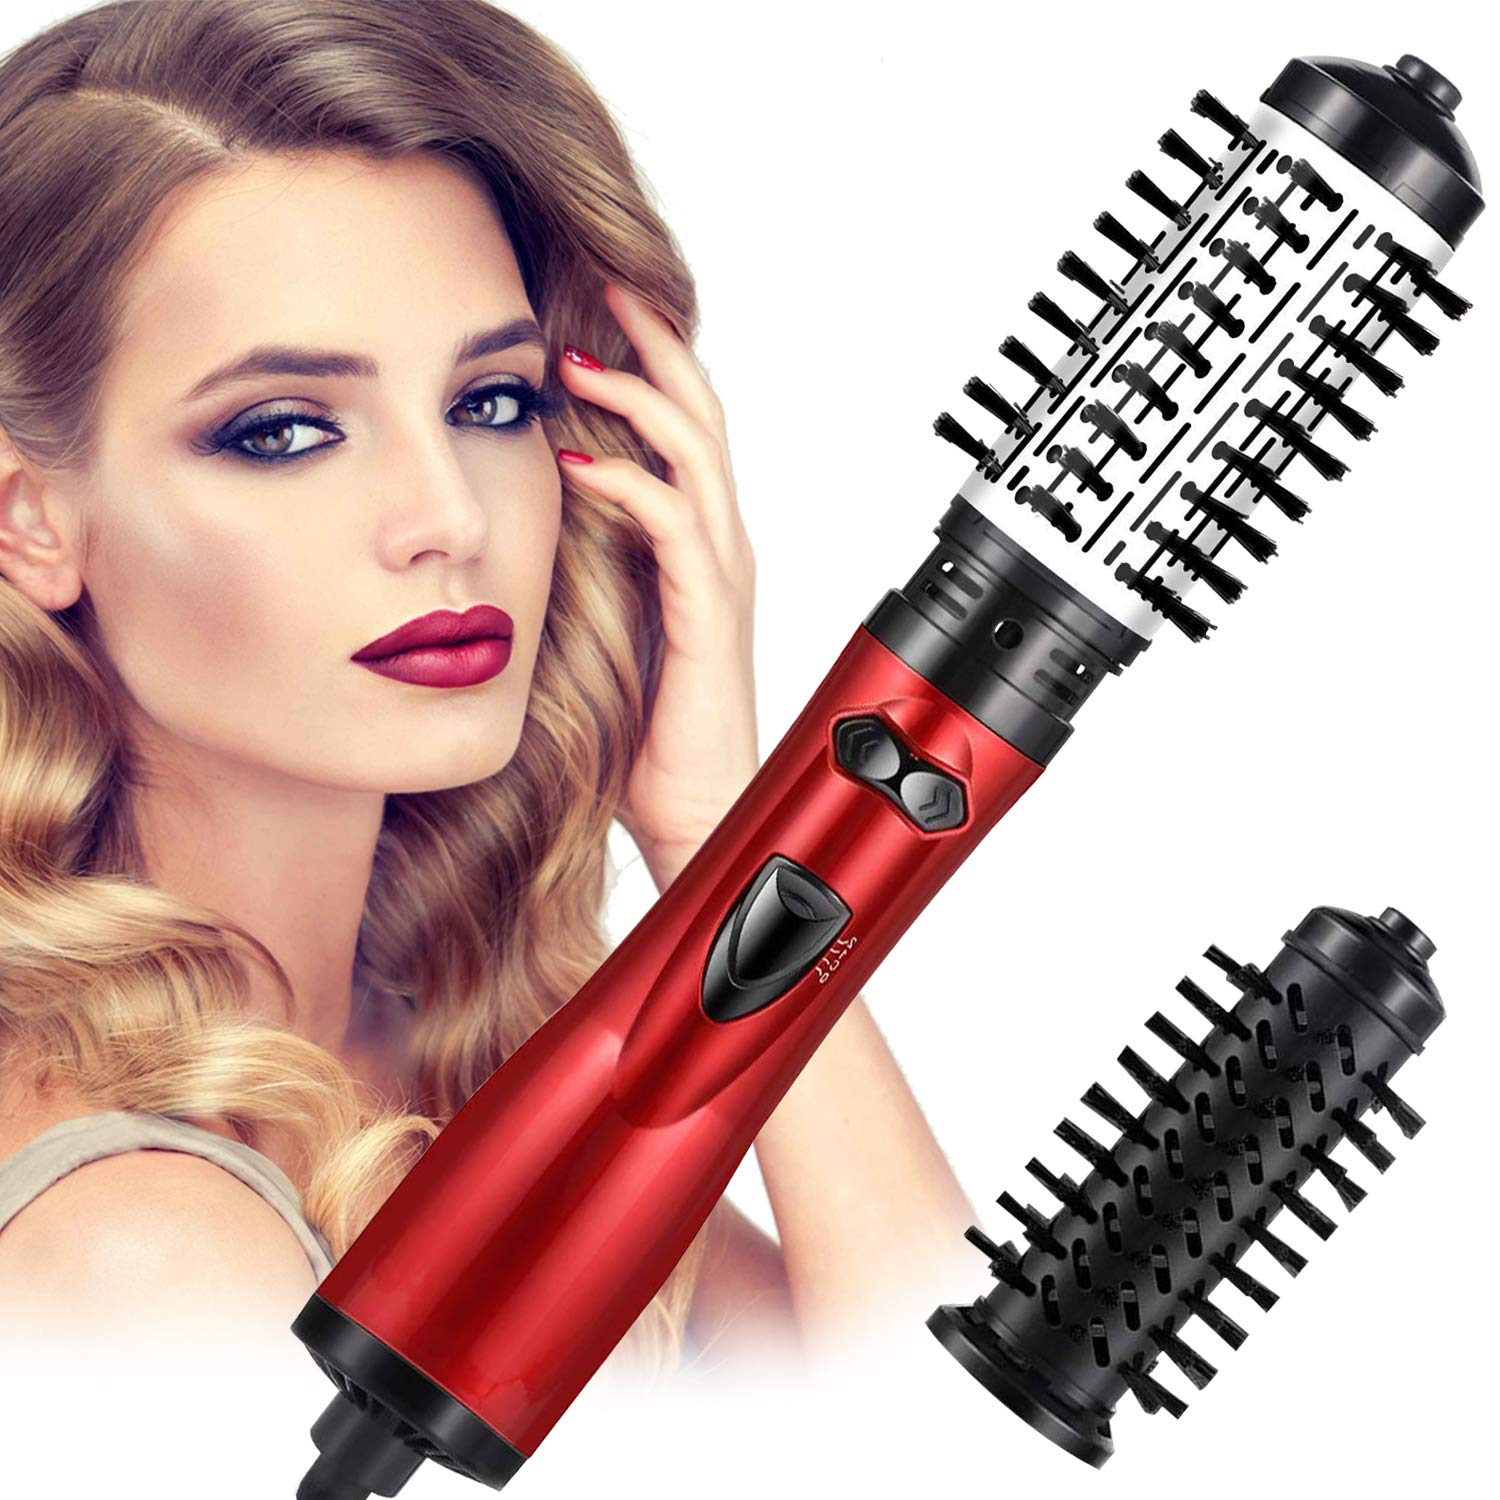 Hot Air Brush One-Step Hair Dryer Brush & Volumizer,Dry & Straighten & Curl & Comb 4 In 1 Salon Negative Ionic Hair Reduce Frizz And Static,Hair Styling Tools For Women And Girl All Types Hair